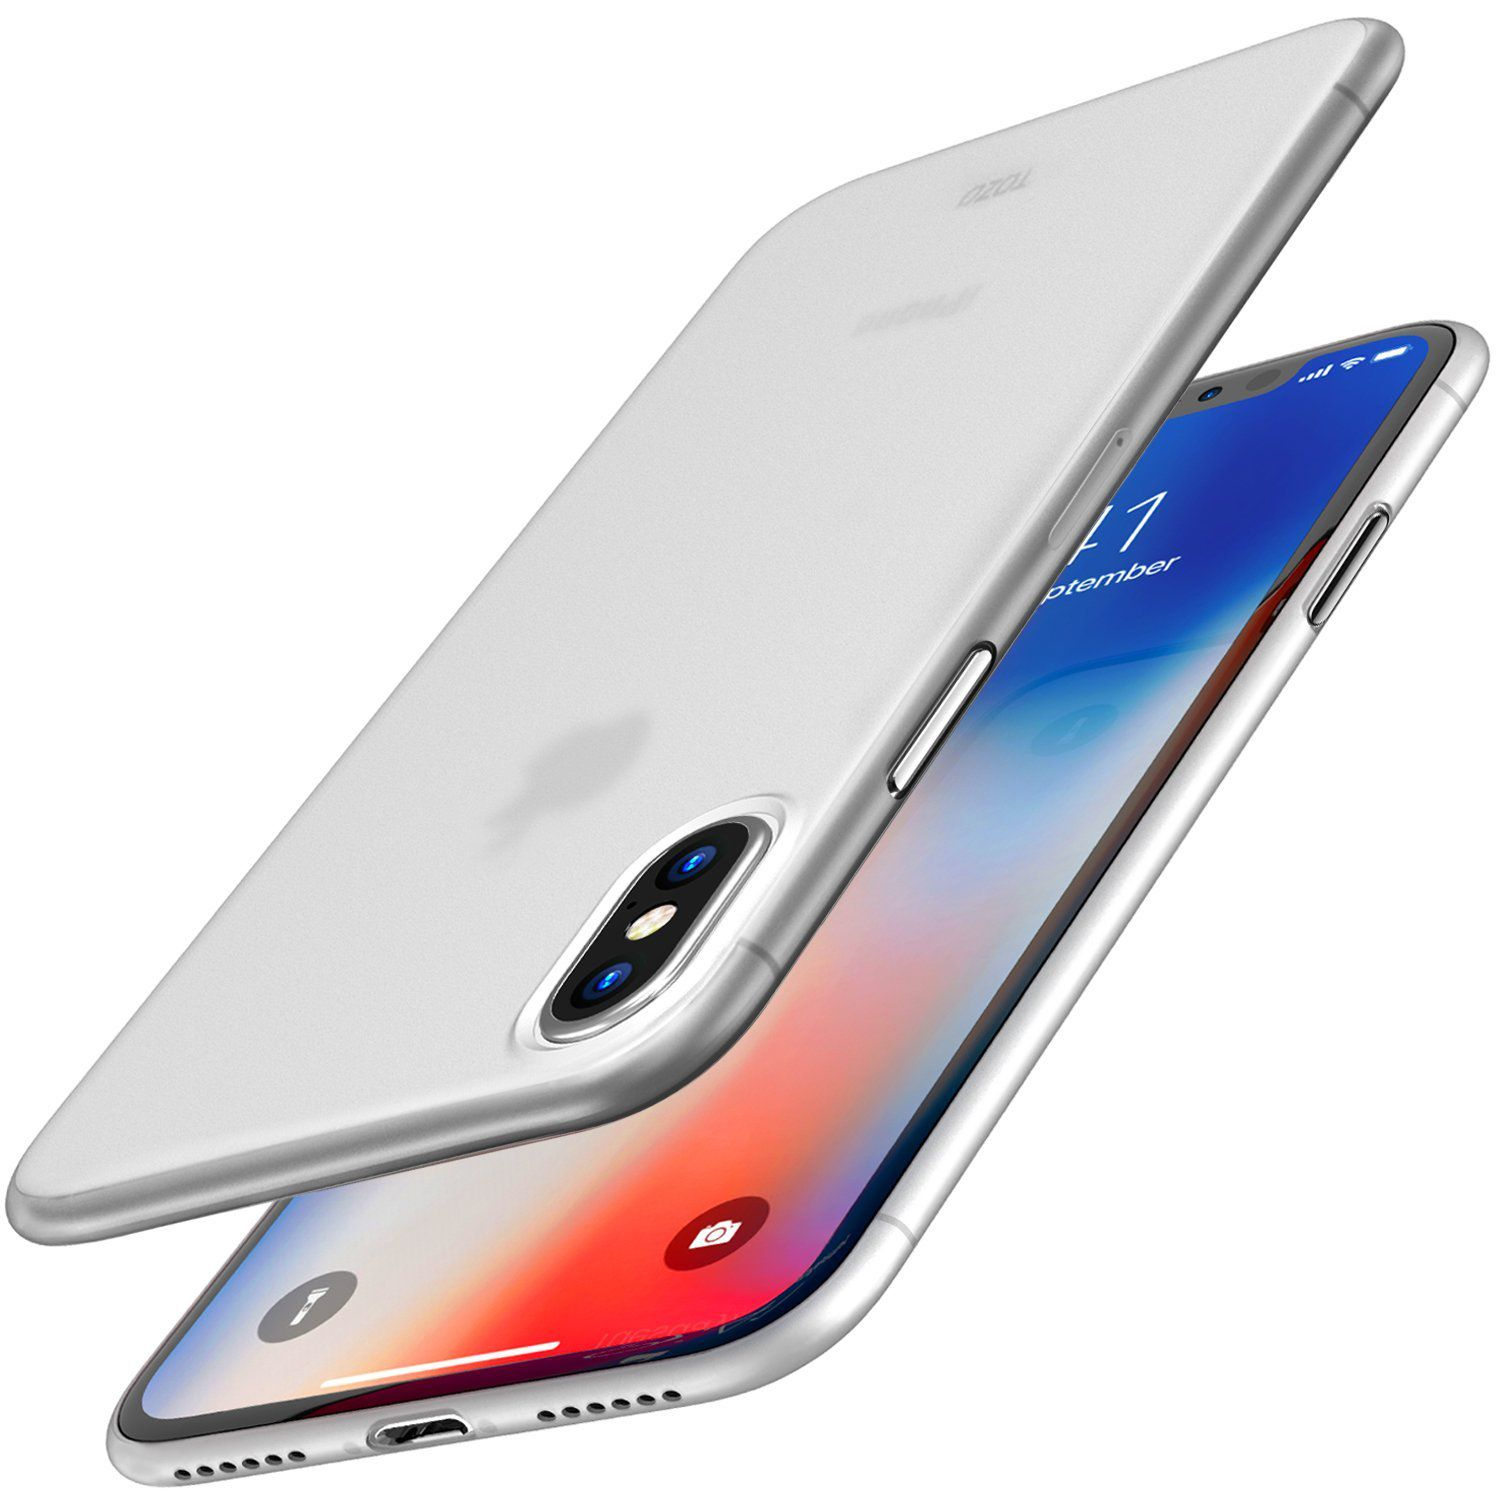 TOZO for iPhone X Case PP Ultra Thin [0 35mm] World s Thinest Protect Hard Case [ Semi transparent ] Lightweight [Matte White]